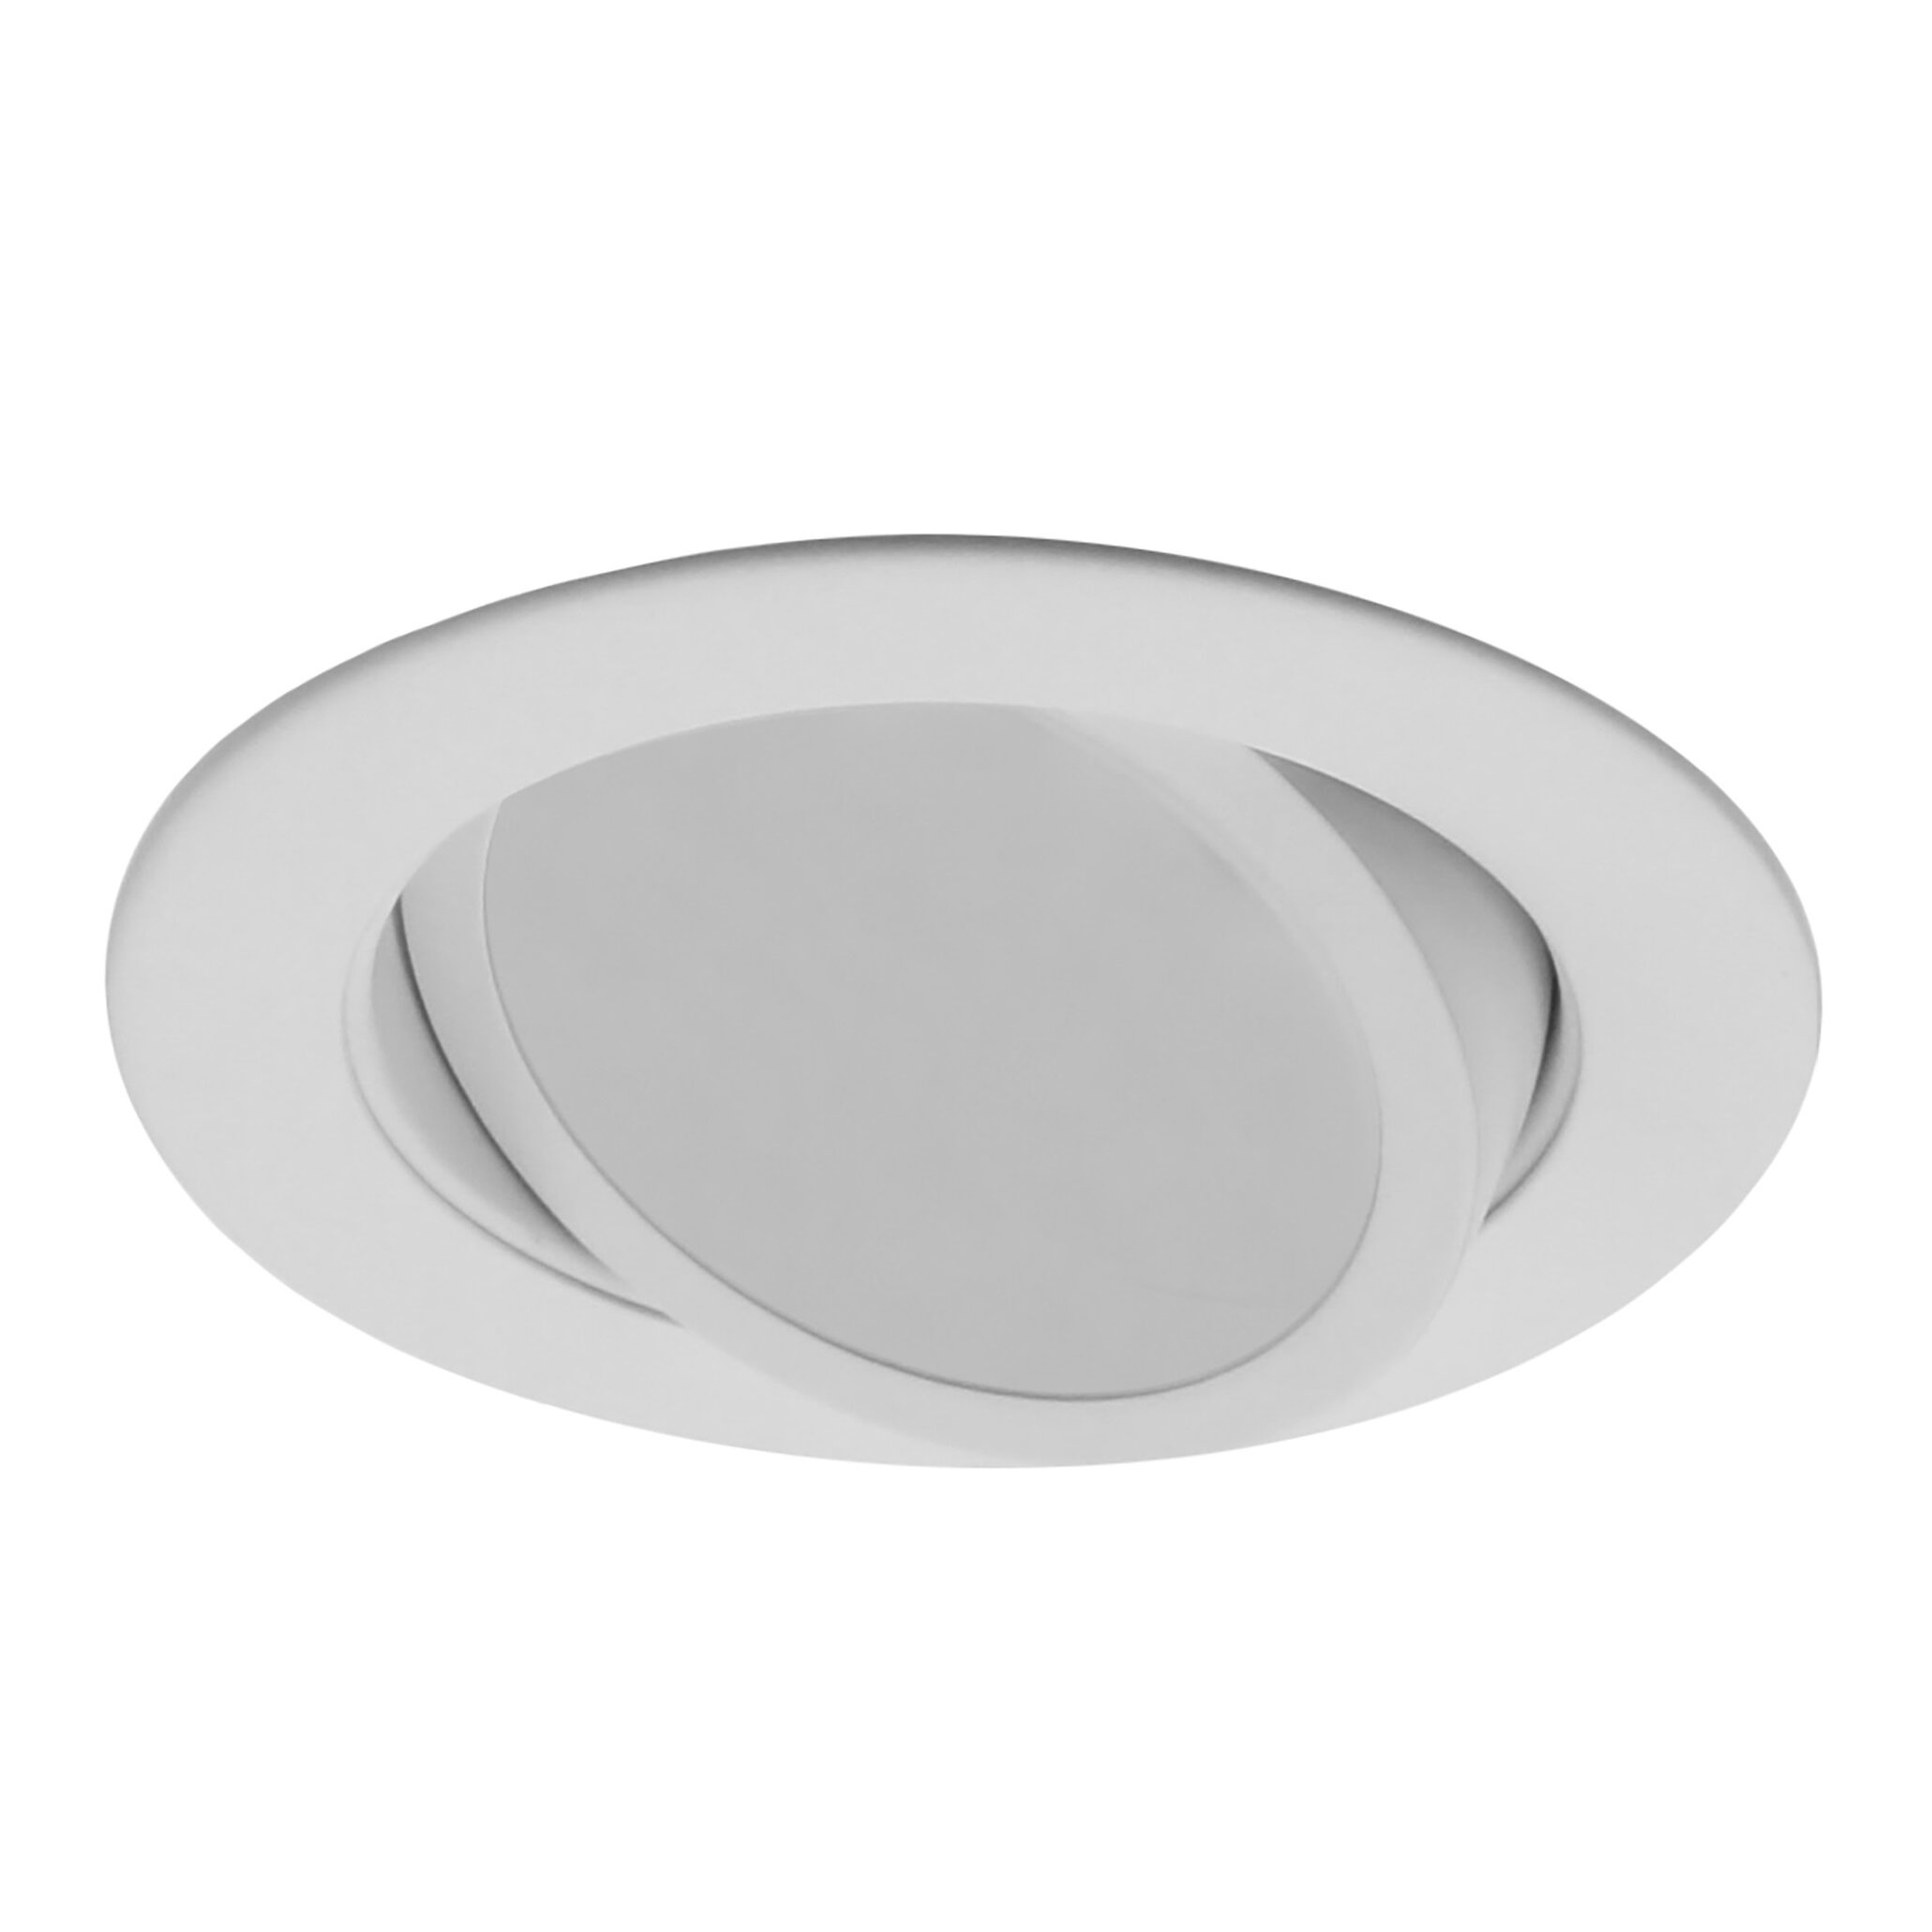 "NICOR Lighting Gimbal 4"" LED Recessed Trim 